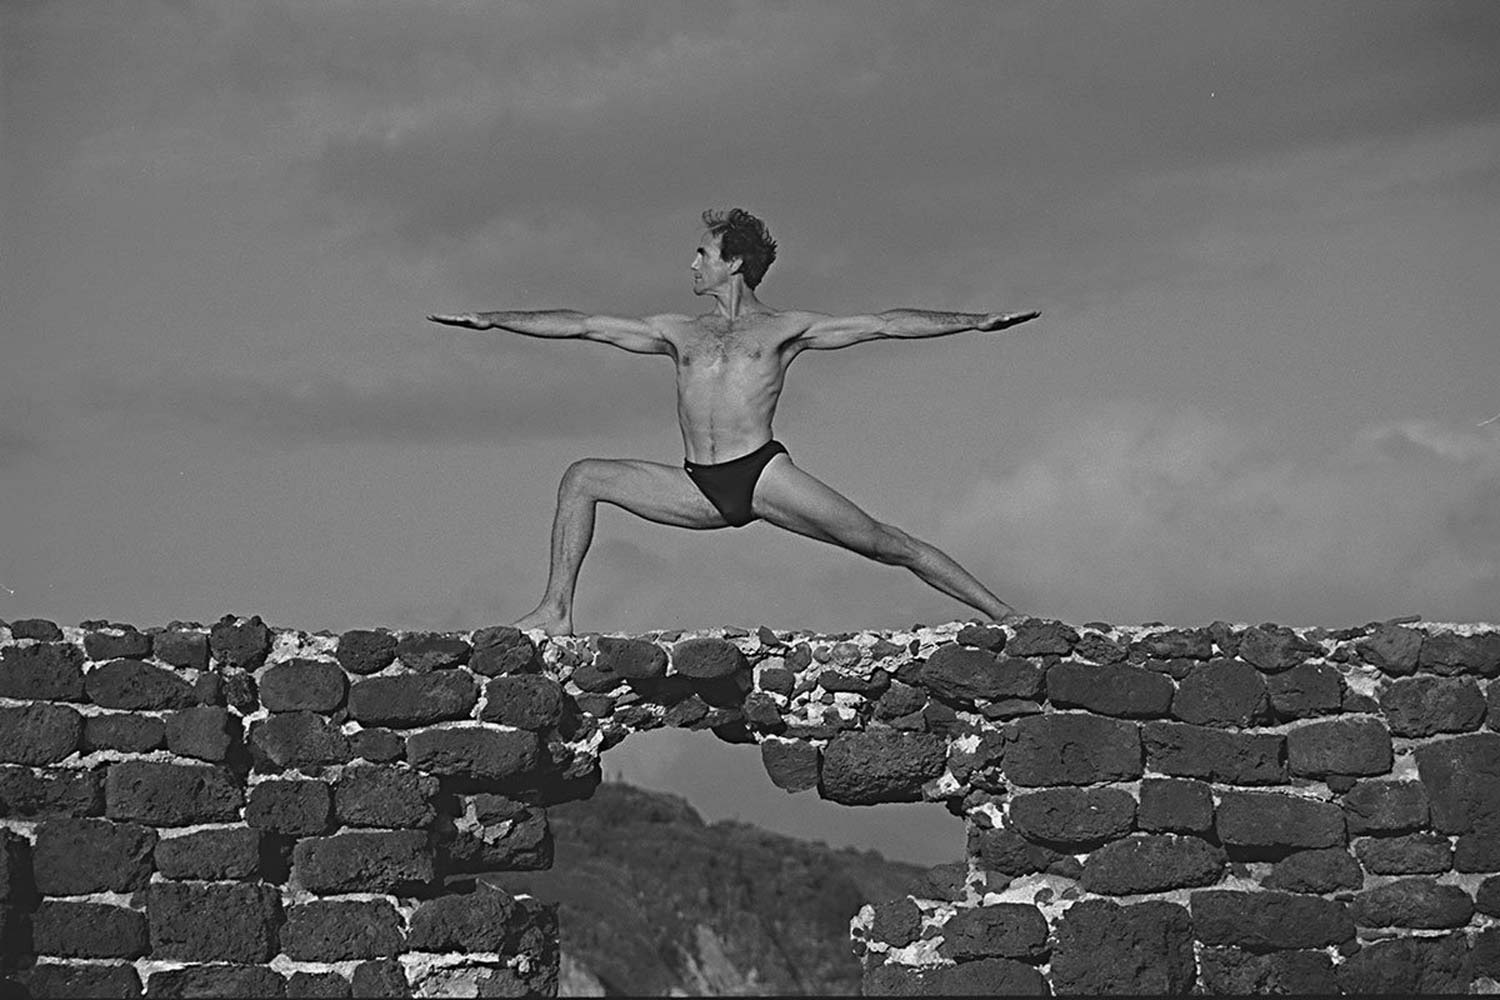 David Swenson in Warrior Two Pose on a wall